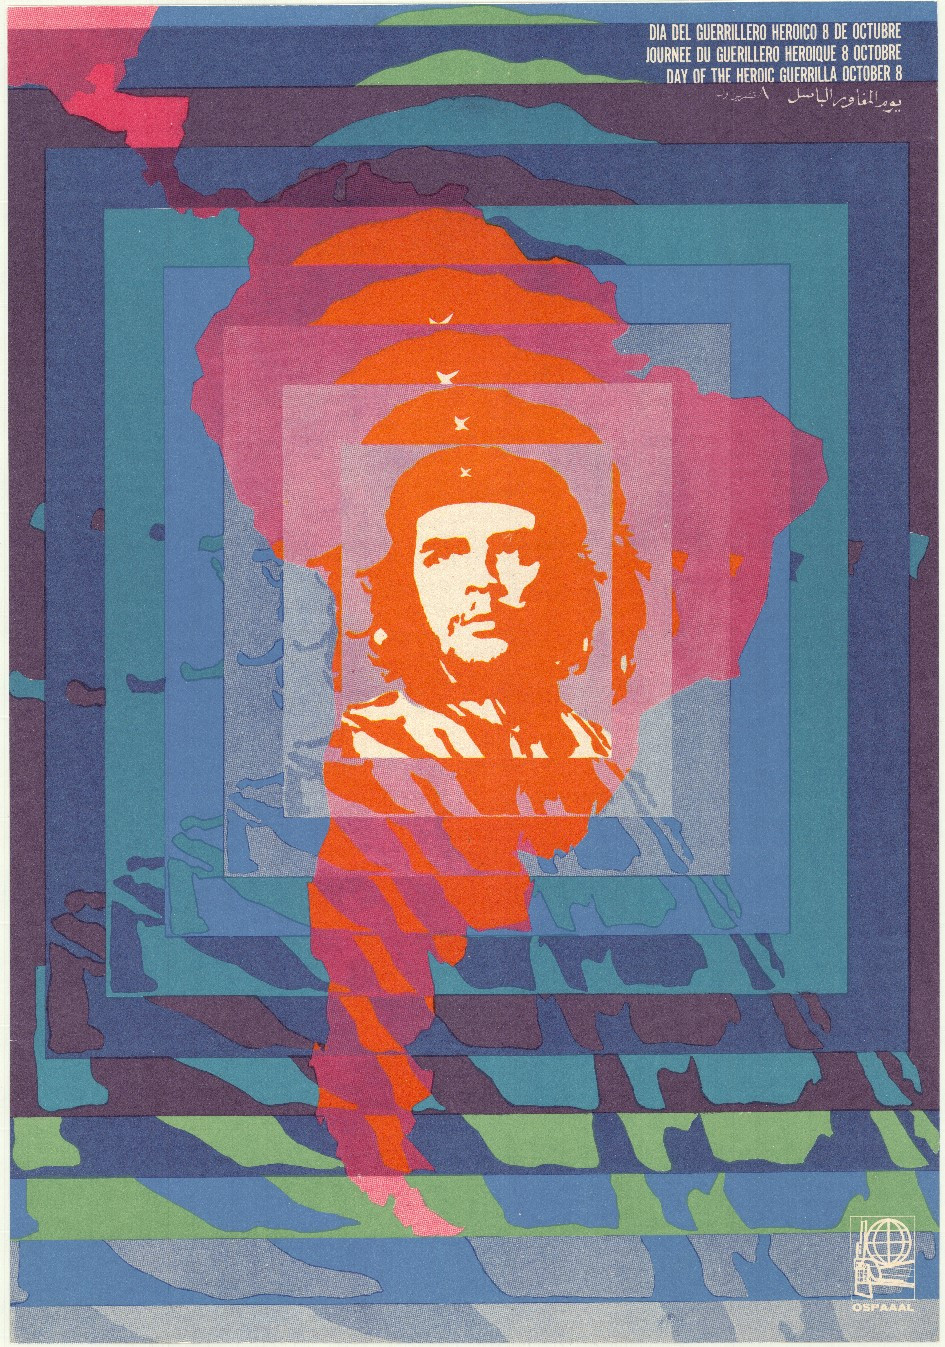 Elena Serrano, Dia del guerrillero heroic (Day of The Heroic Guerrilla), 1968. Collection Stedelijk Museum Amsterdam